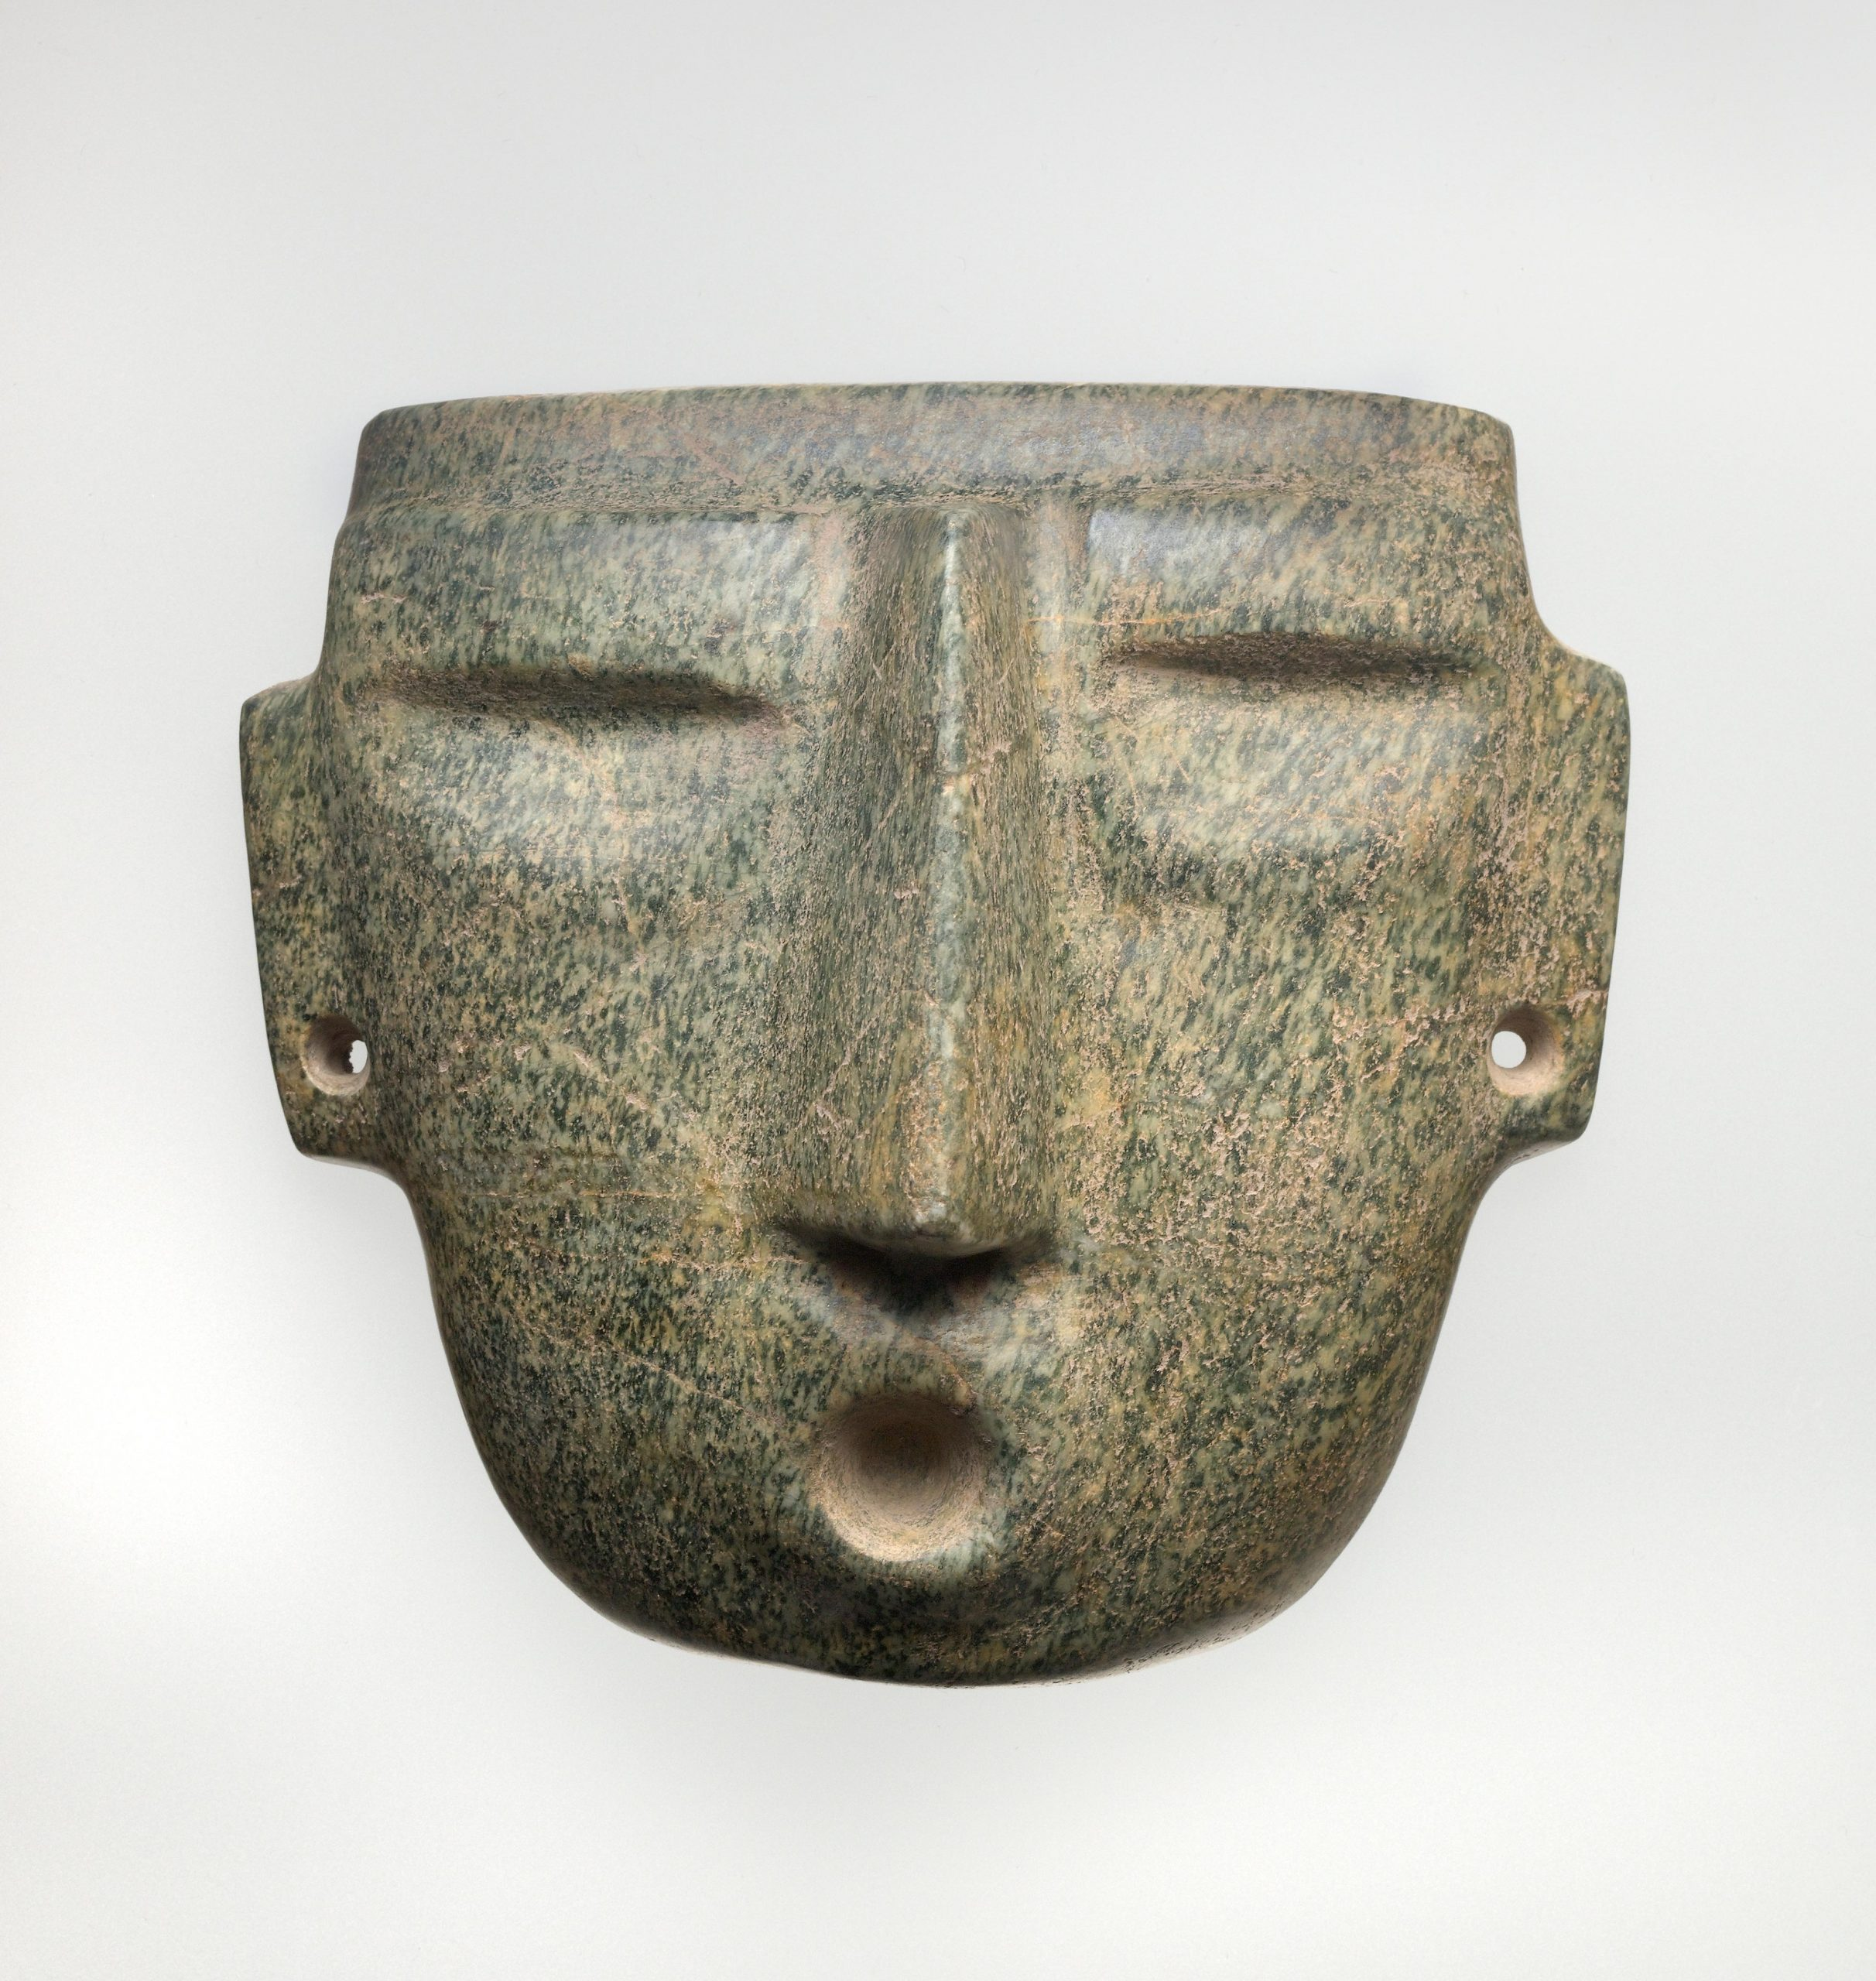 A mask with naturalistic features, including an open mouth, carved-out eyes, and spool holes in the nose and ears.